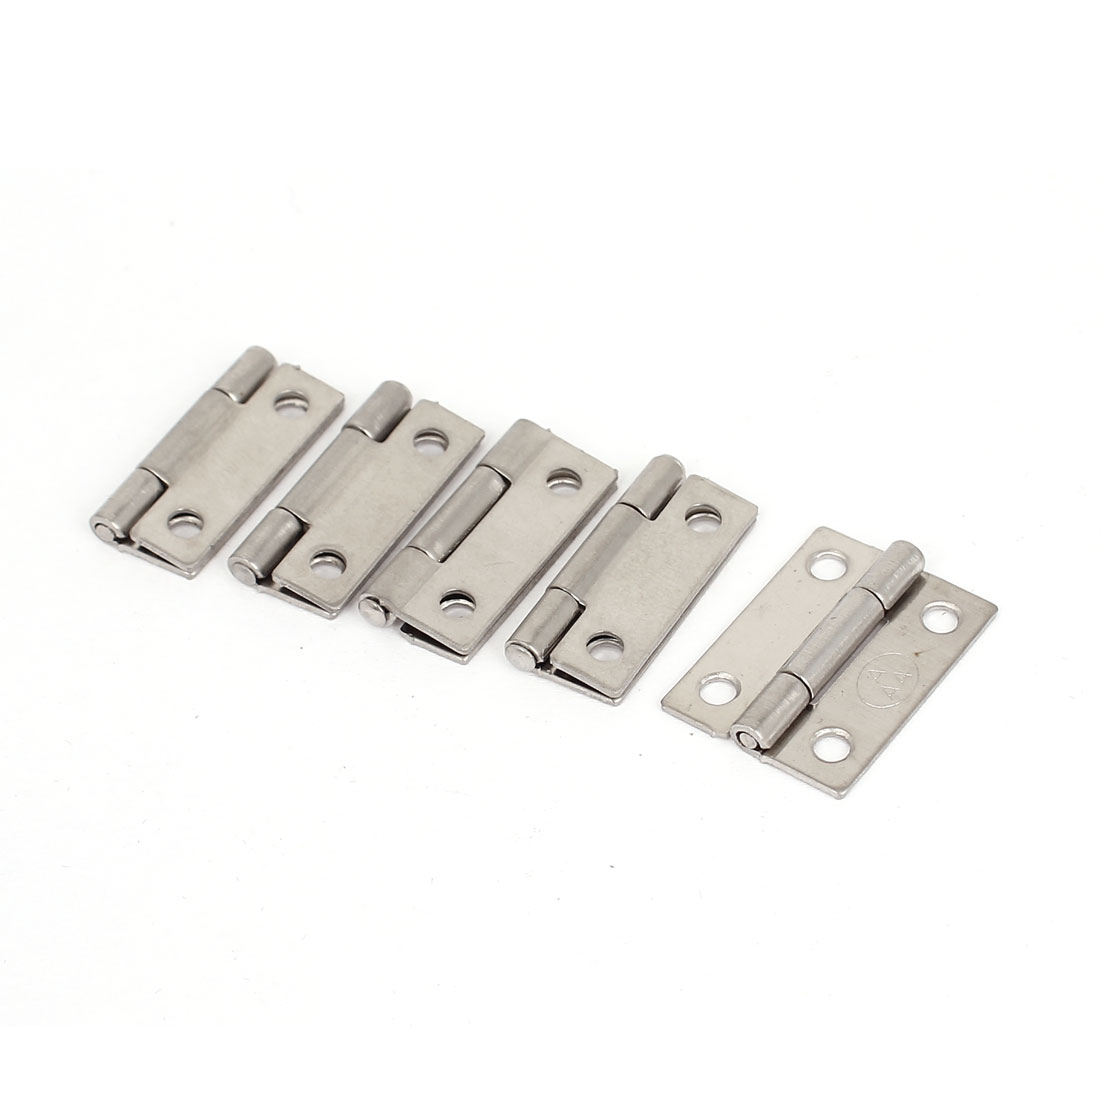 Cupboard Cabinet Stainless Steel Folding Door Butt Hinges 25mm Long 5pcs